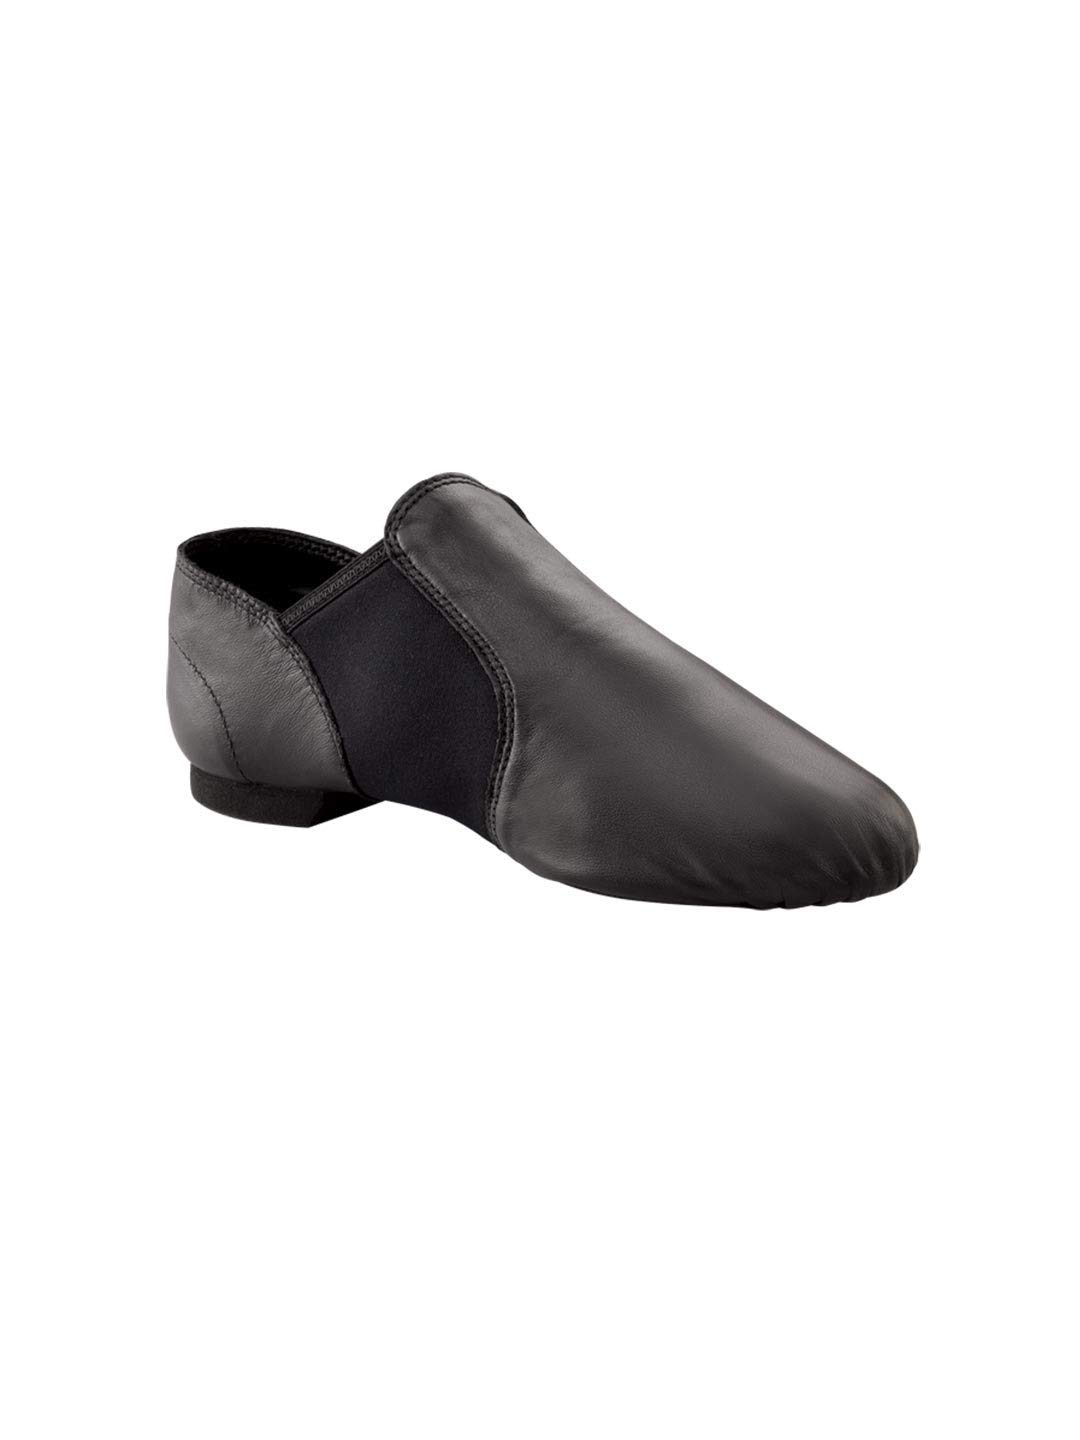 Capezio Women's Economy Jazz Slip On, Black, 8.5M US by Capezio